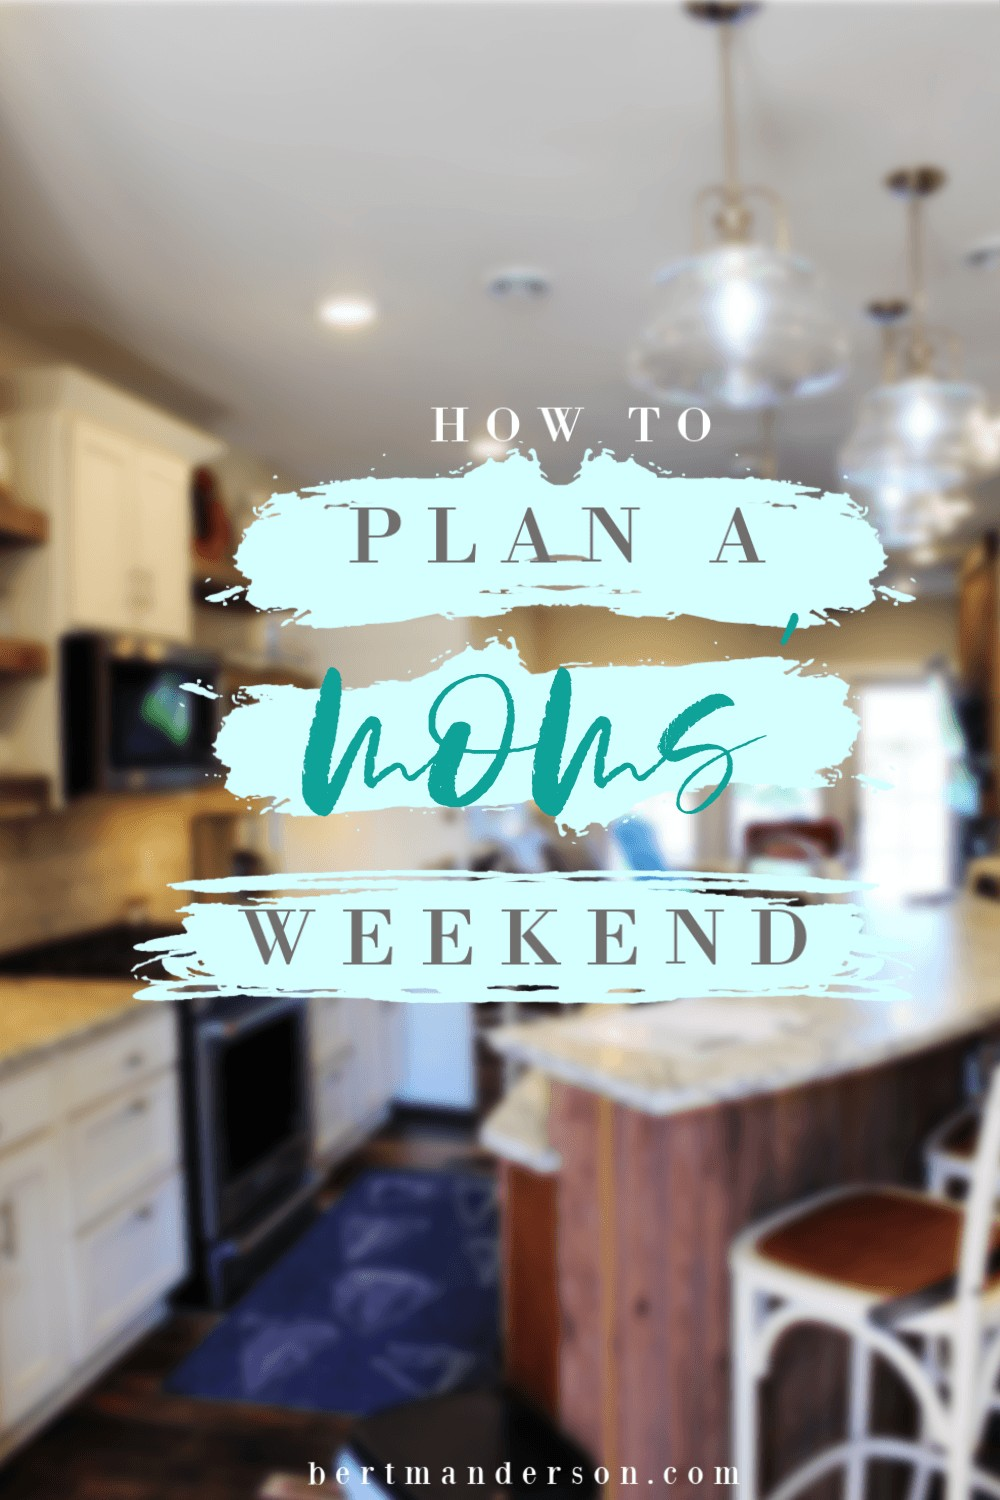 How to plan a moms' weekend away. Simple tips and tricks. #momsnight #girlstrip #momstrip